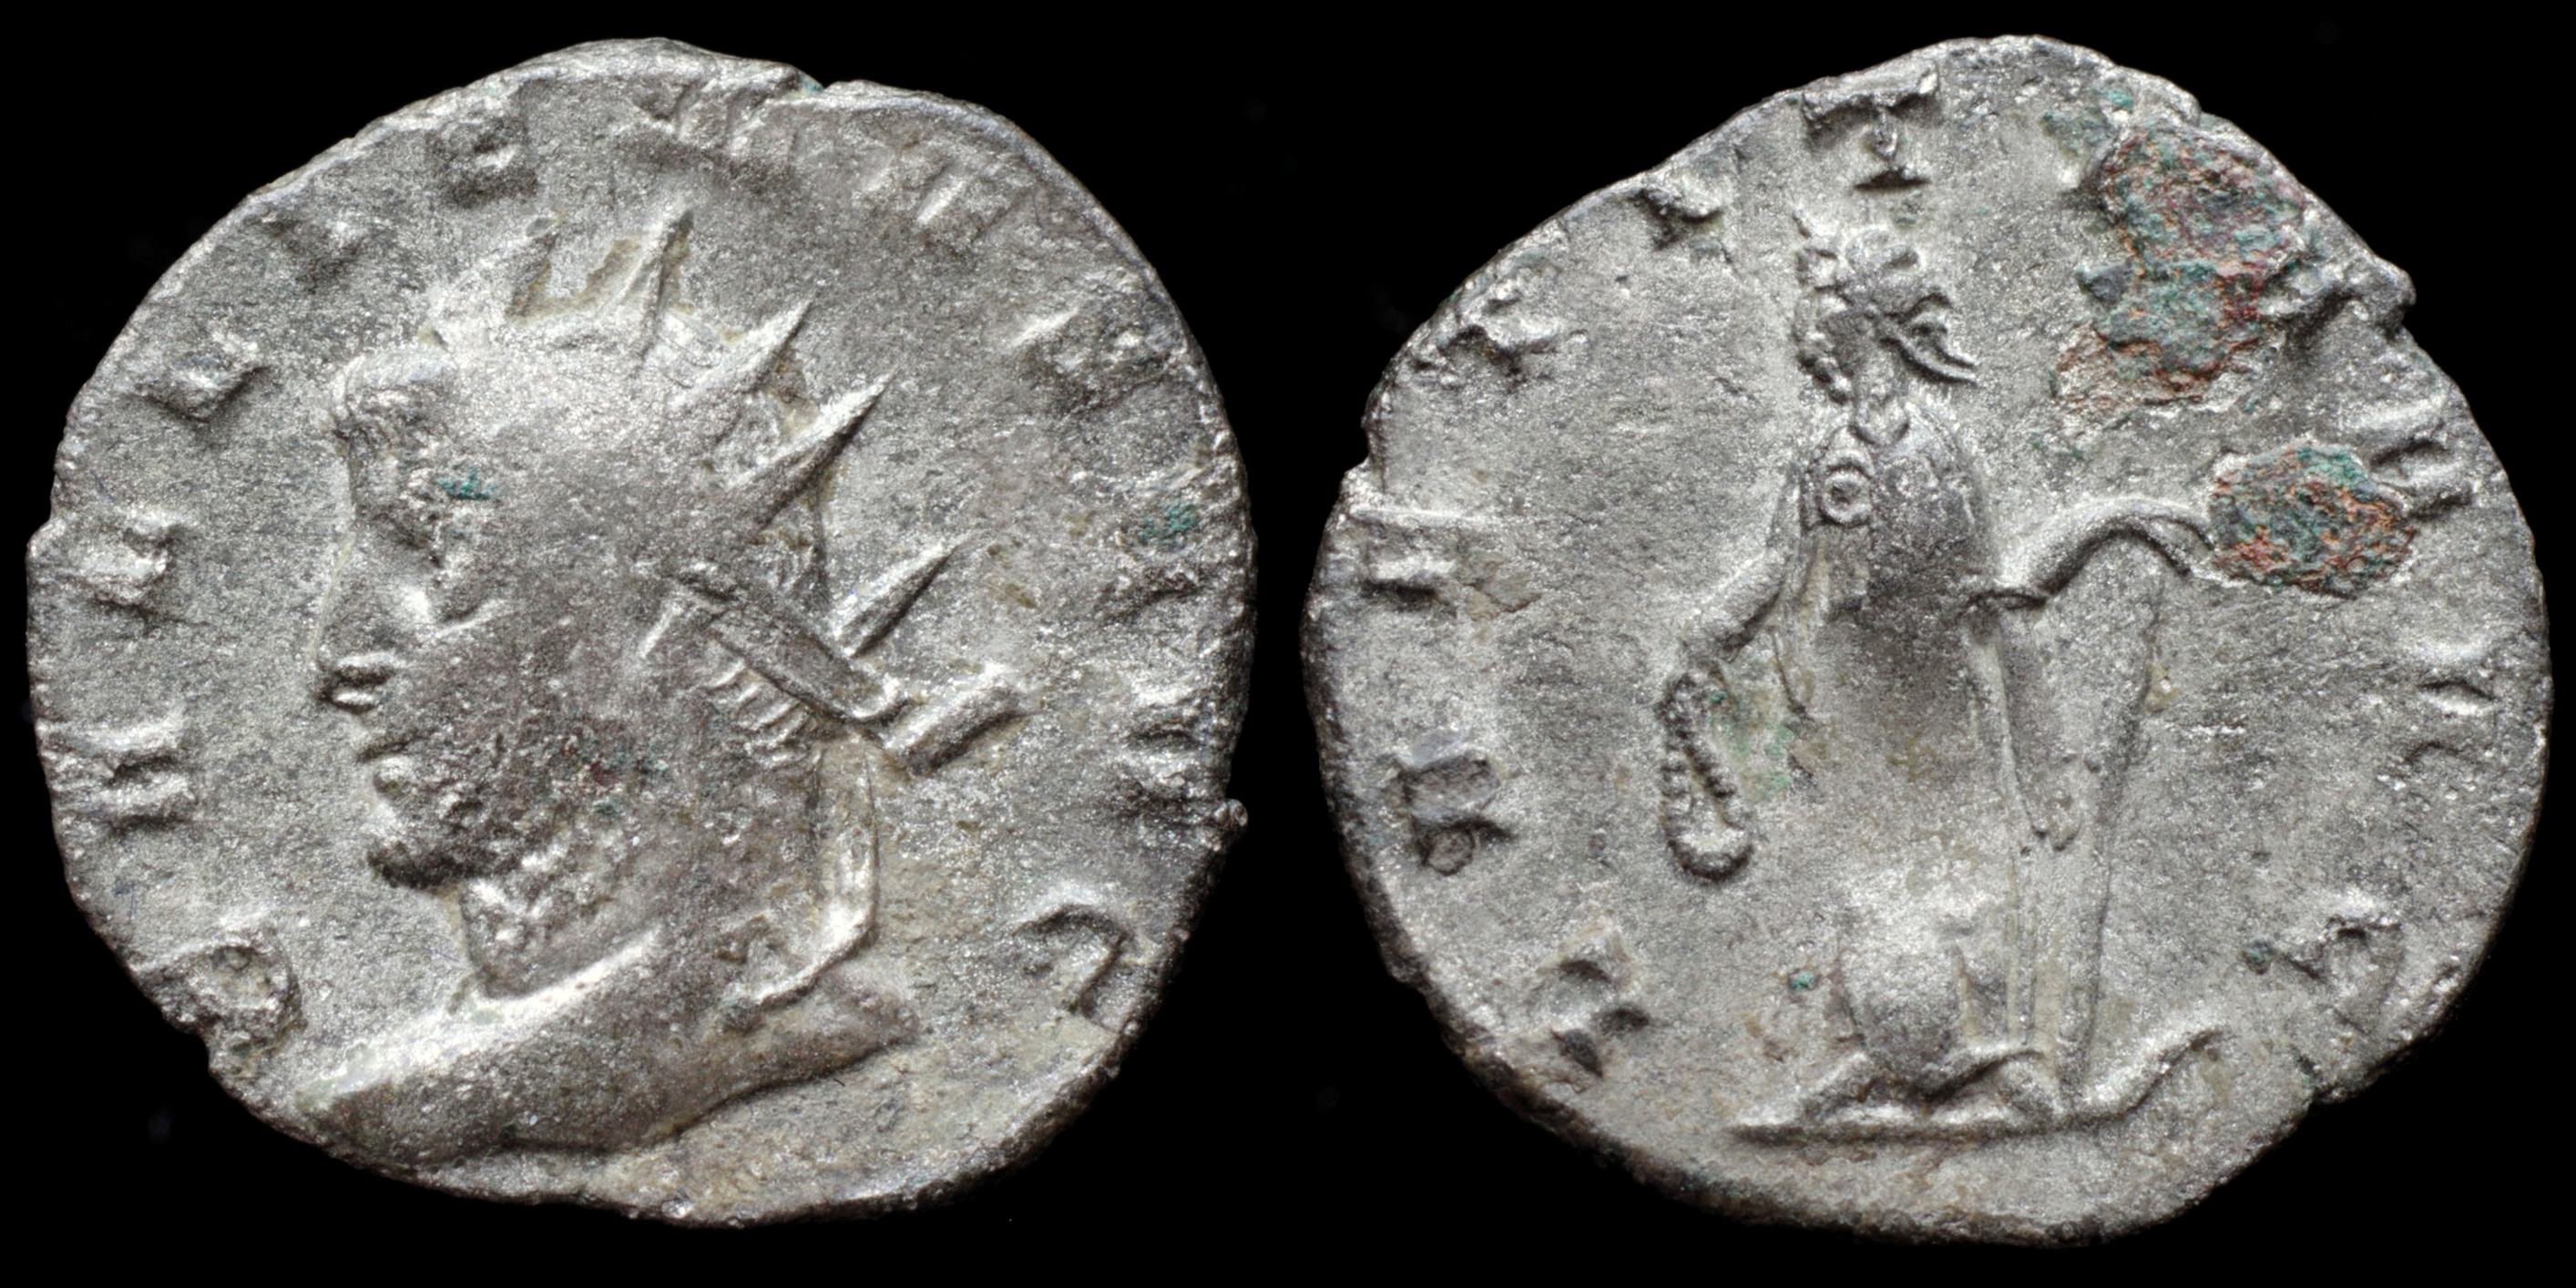 /Files/Images/Coinsite/CoinDB/824_Gallienus_Laetitia(0).jpg